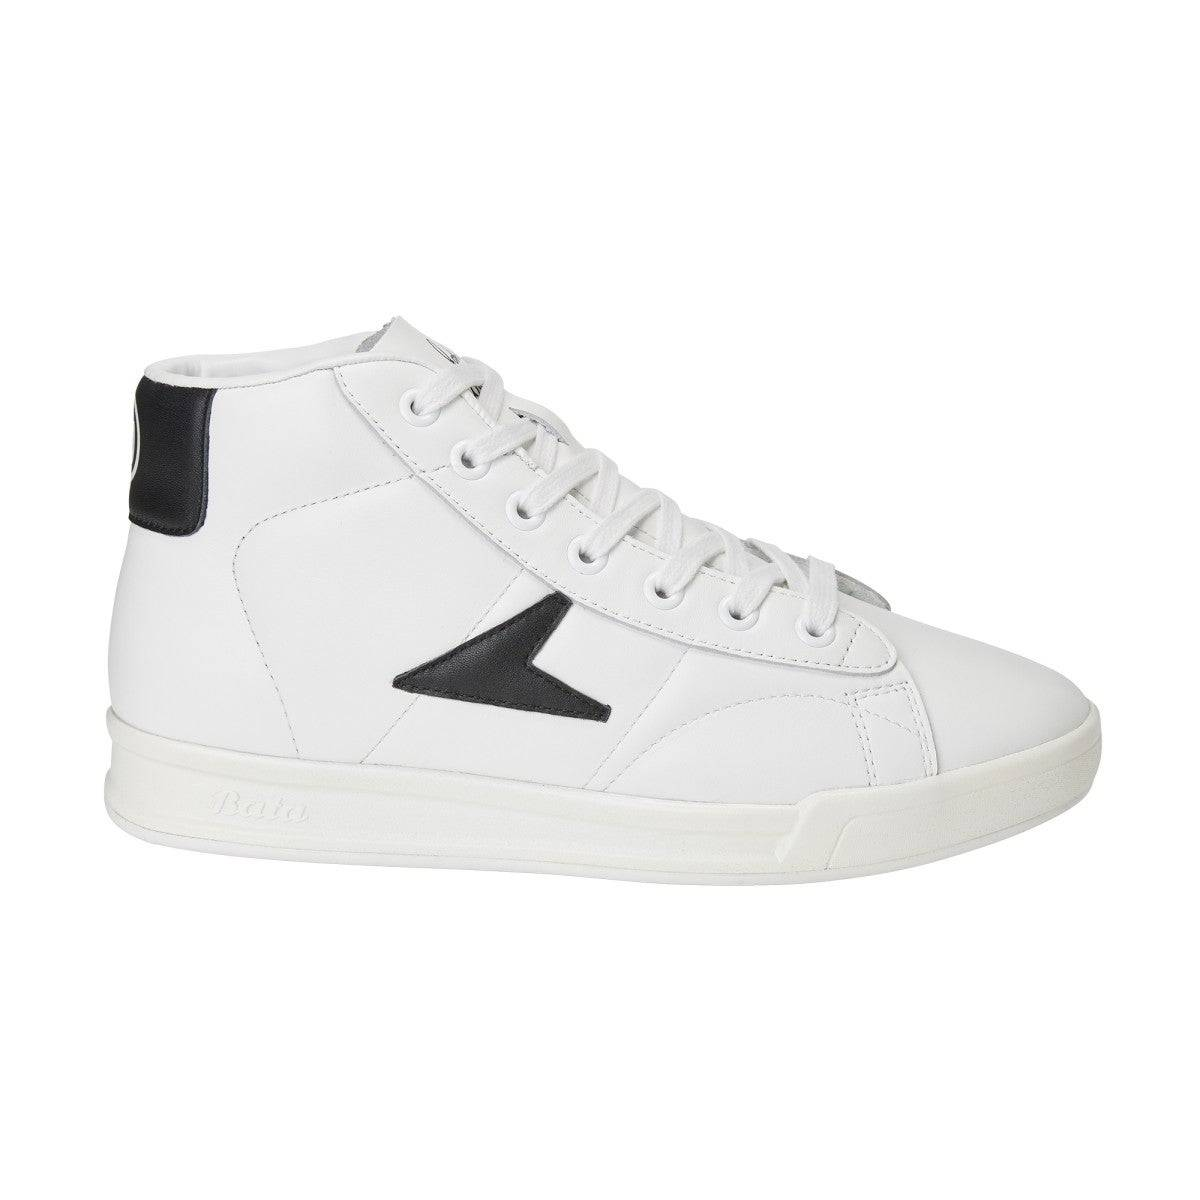 Wilson John Wooden Classic High Top Shoes in White / Black - Size: 8 M  - Unisex - White/Black - Size: 8 M